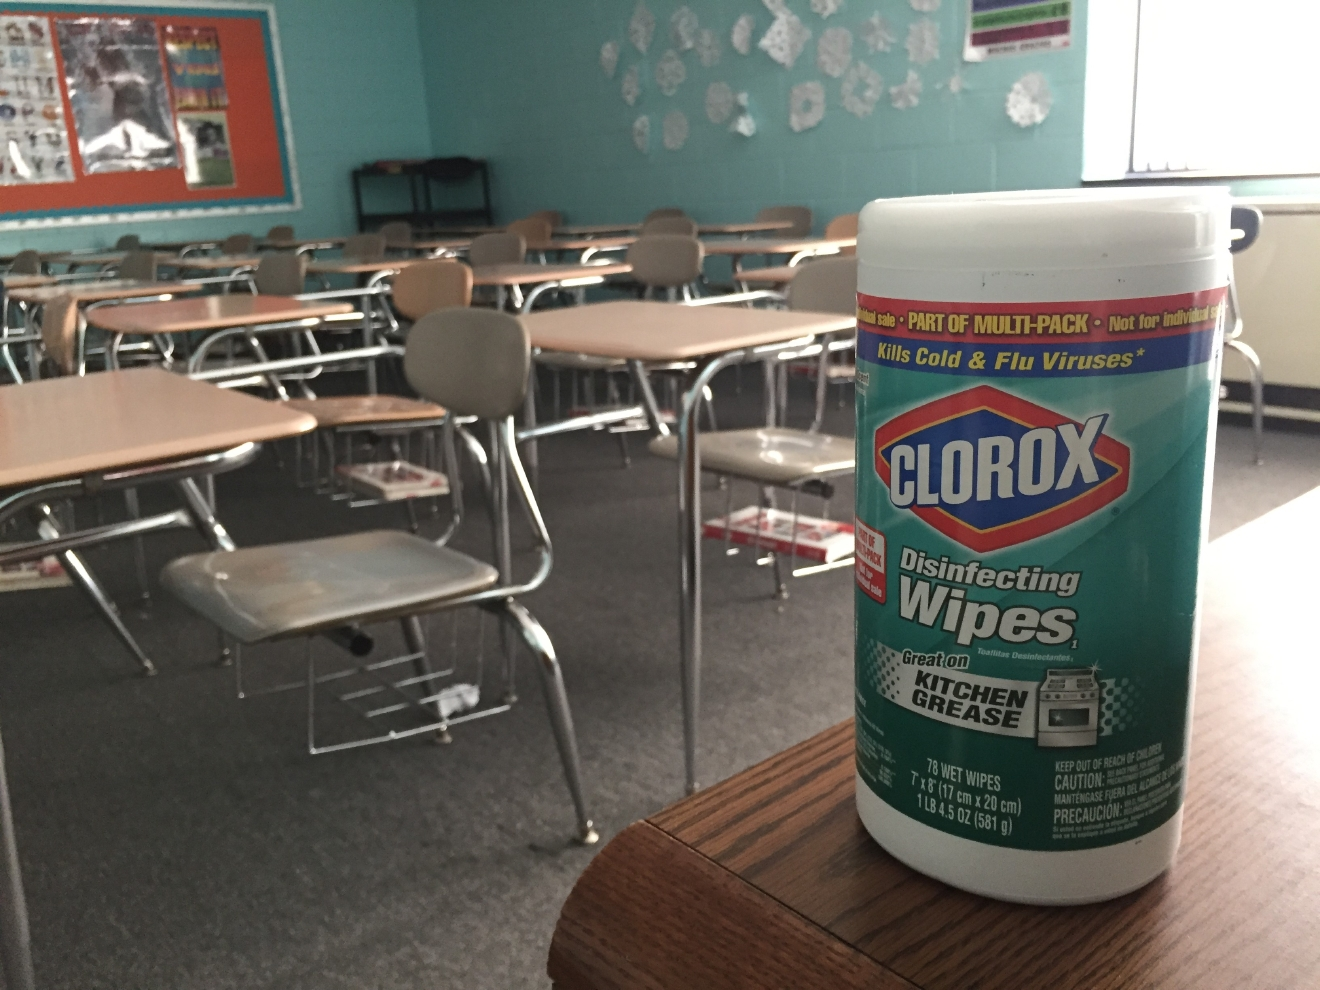 In an effort to keep the flu from spreading, Robbinsville High officials have taken precautions like wiping down the desks in between classes. (Photo credit: WLOS staff)